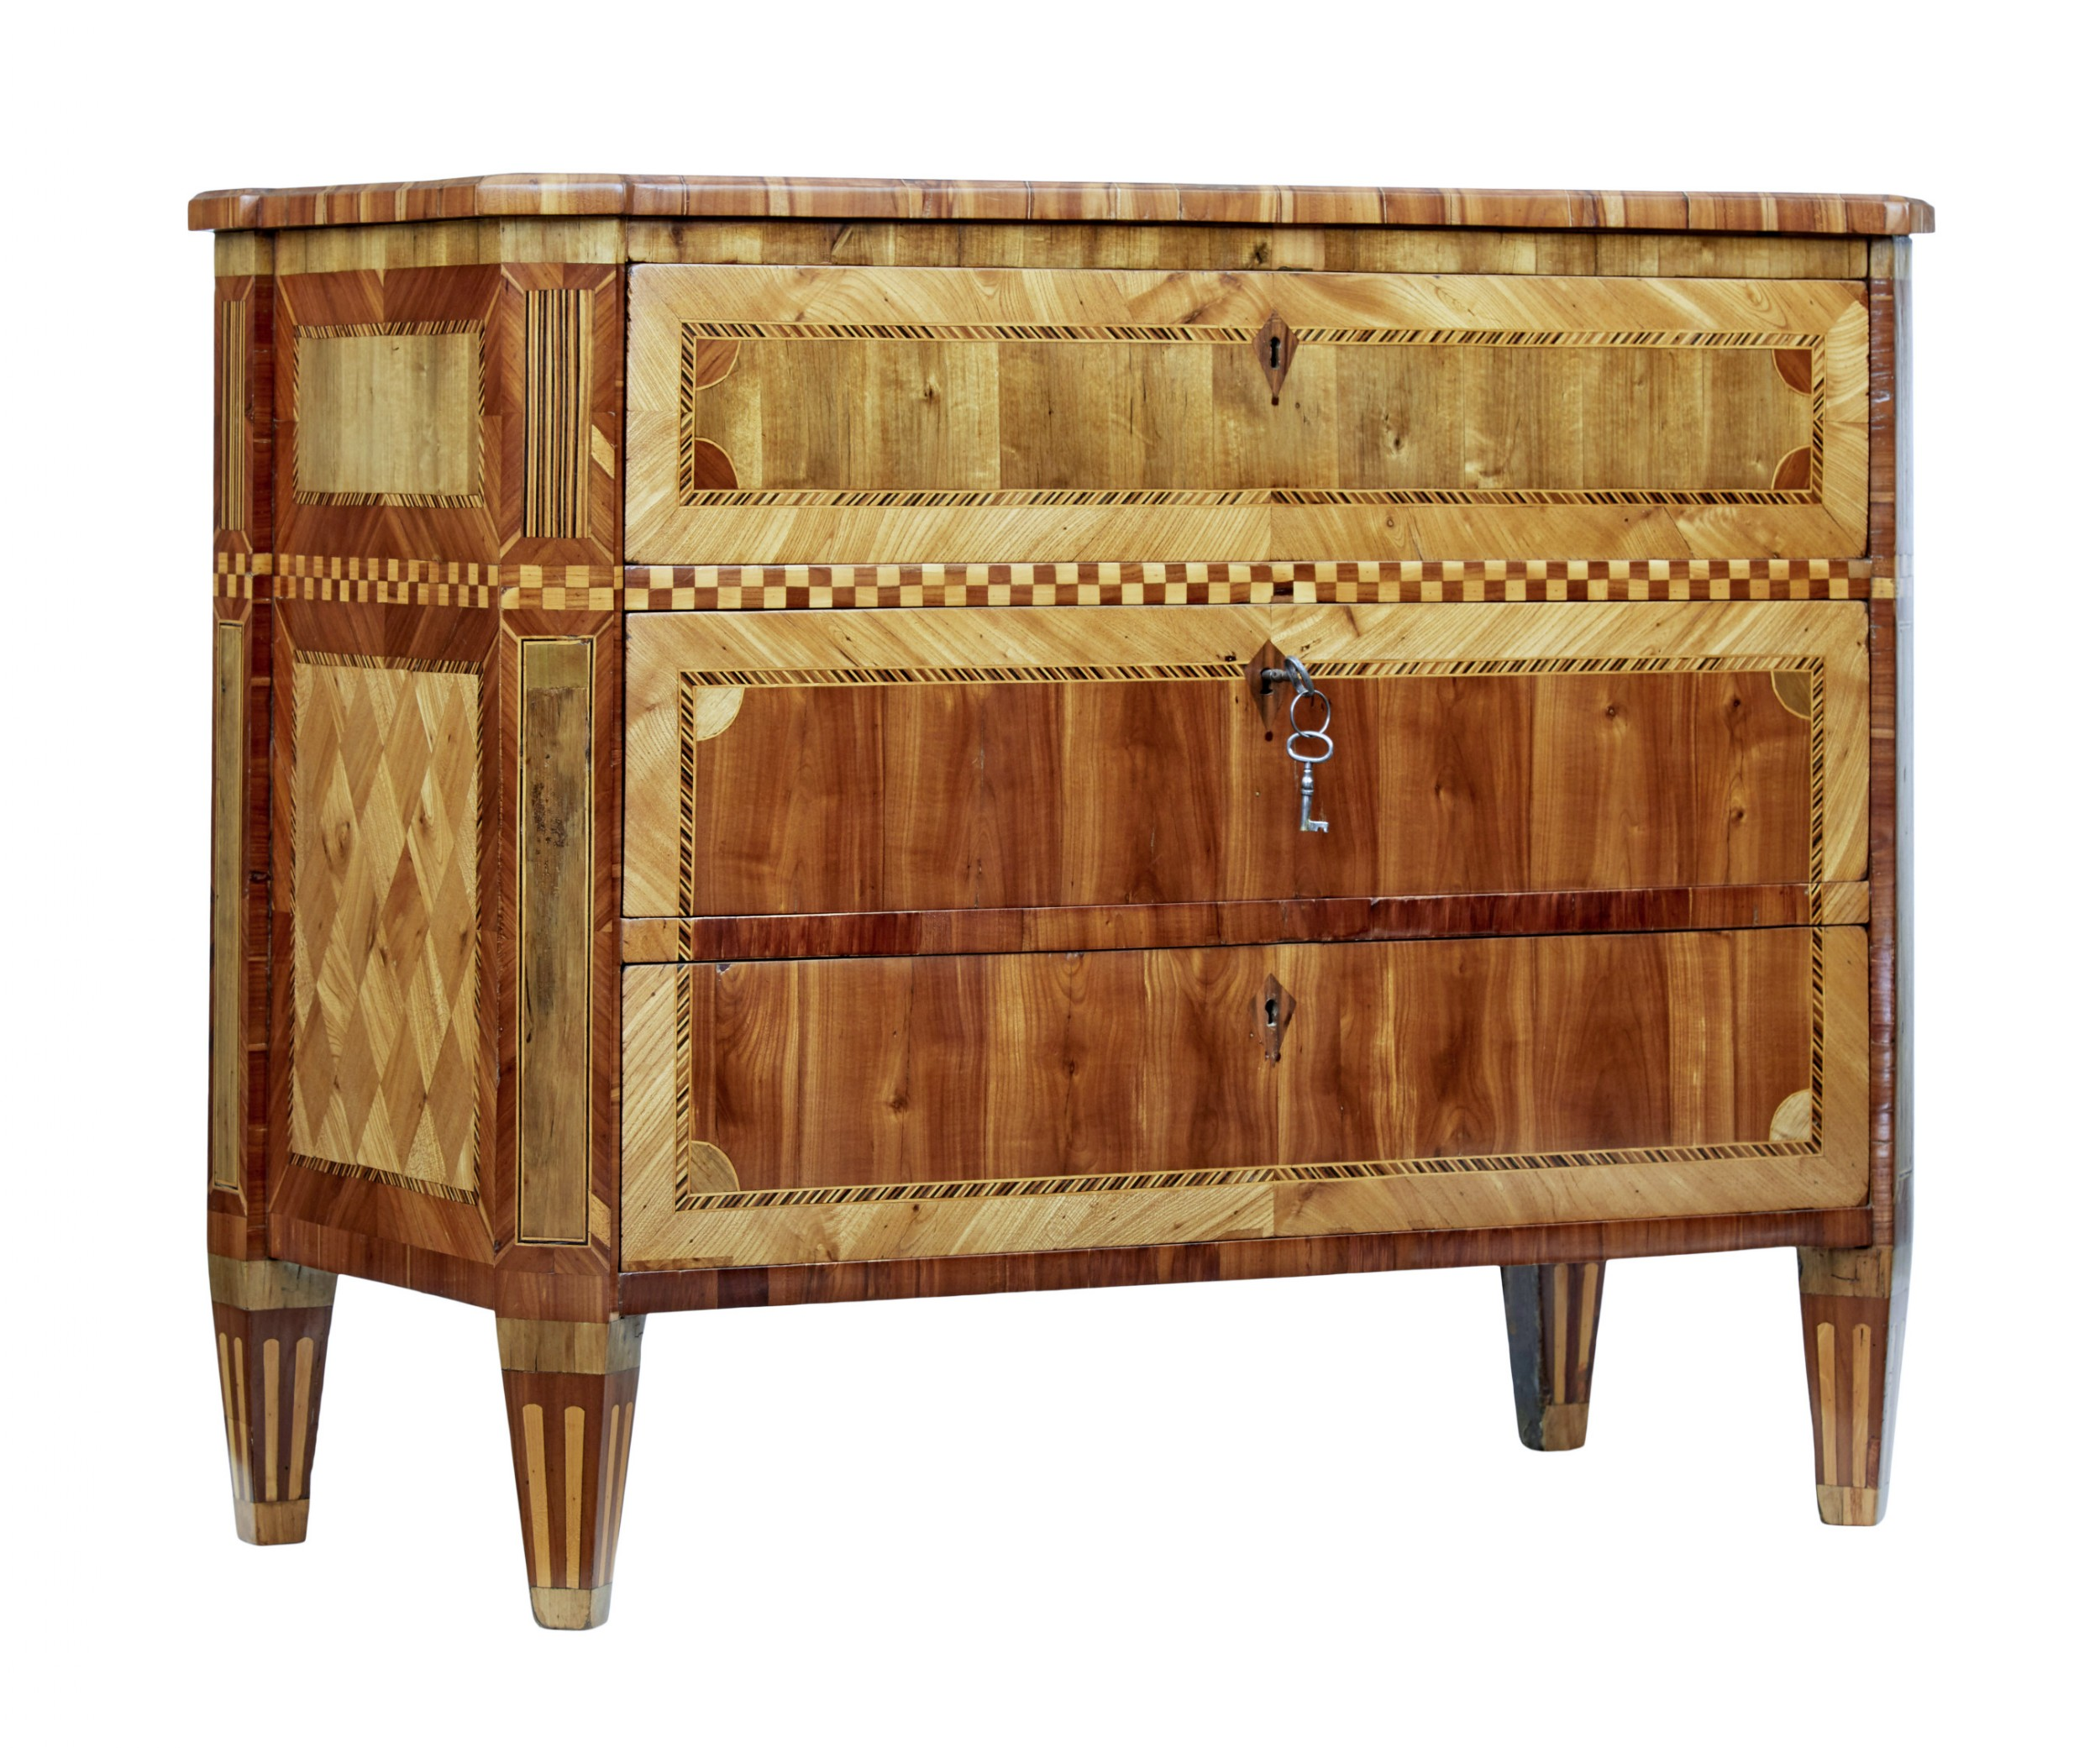 early 19th century gustavian inlaid elm commode